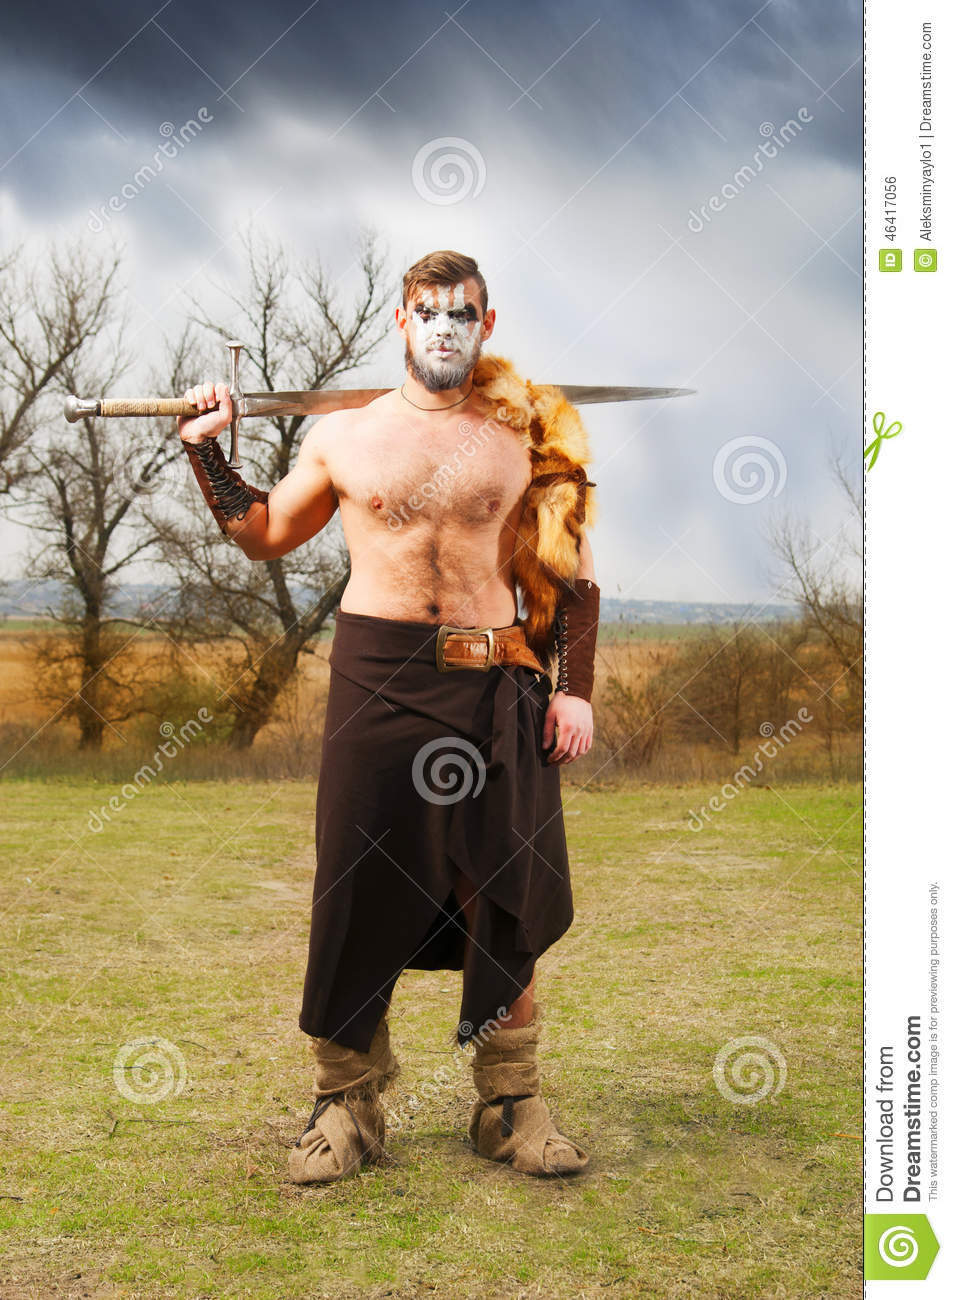 Portrait of a muscular ancient warrior with a sword